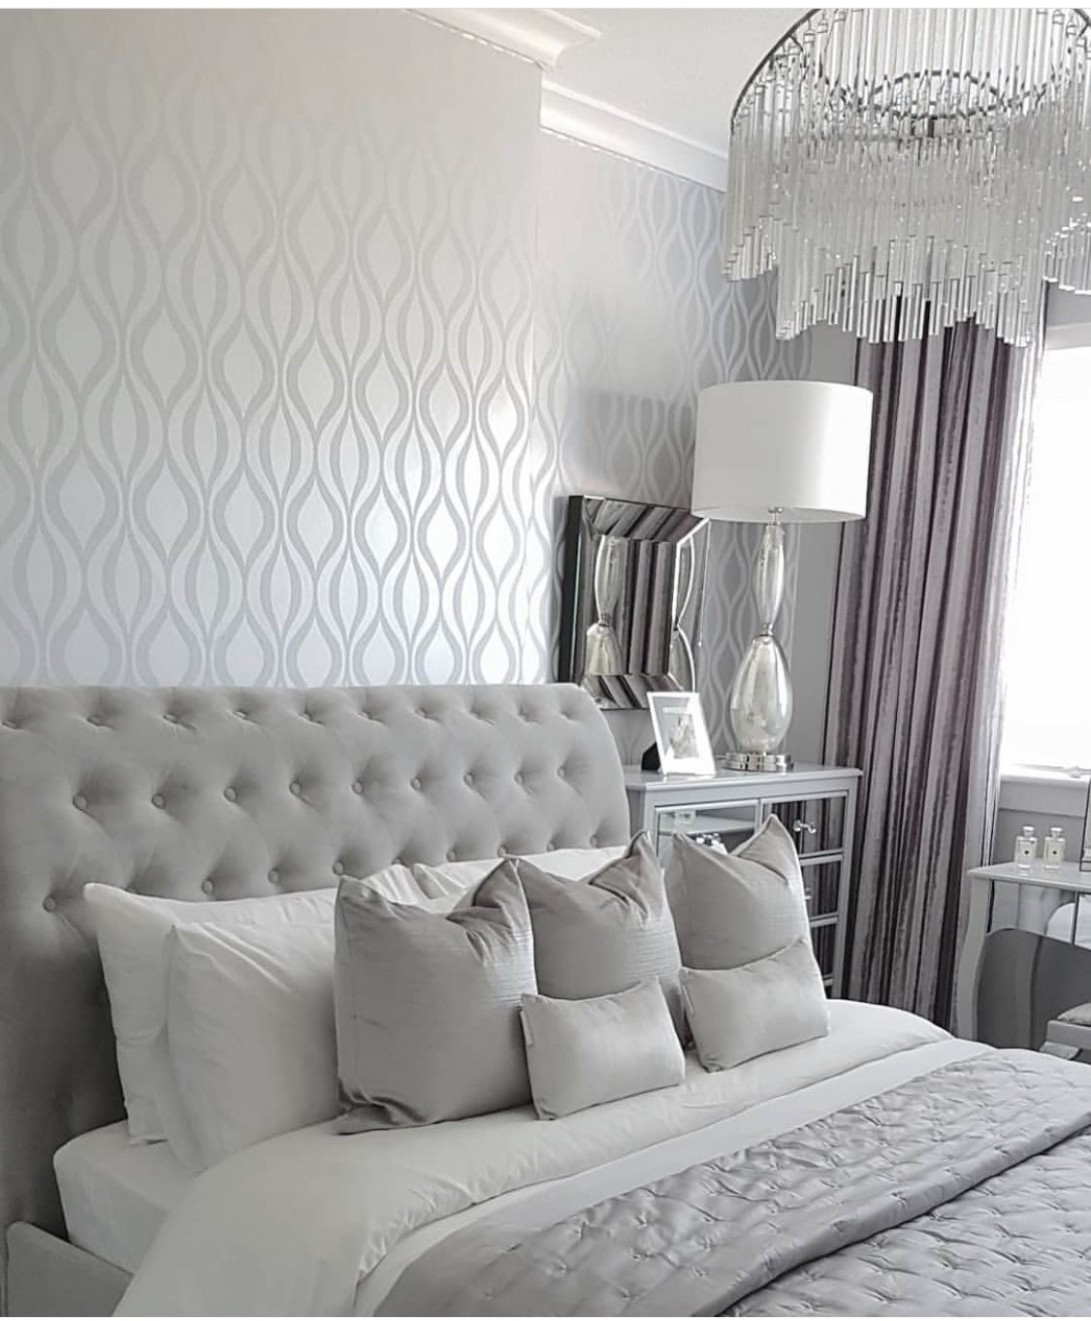 Pin by Elly on Home improvement  Silver bedroom, Silver bedroom  - Bedroom Ideas Silver